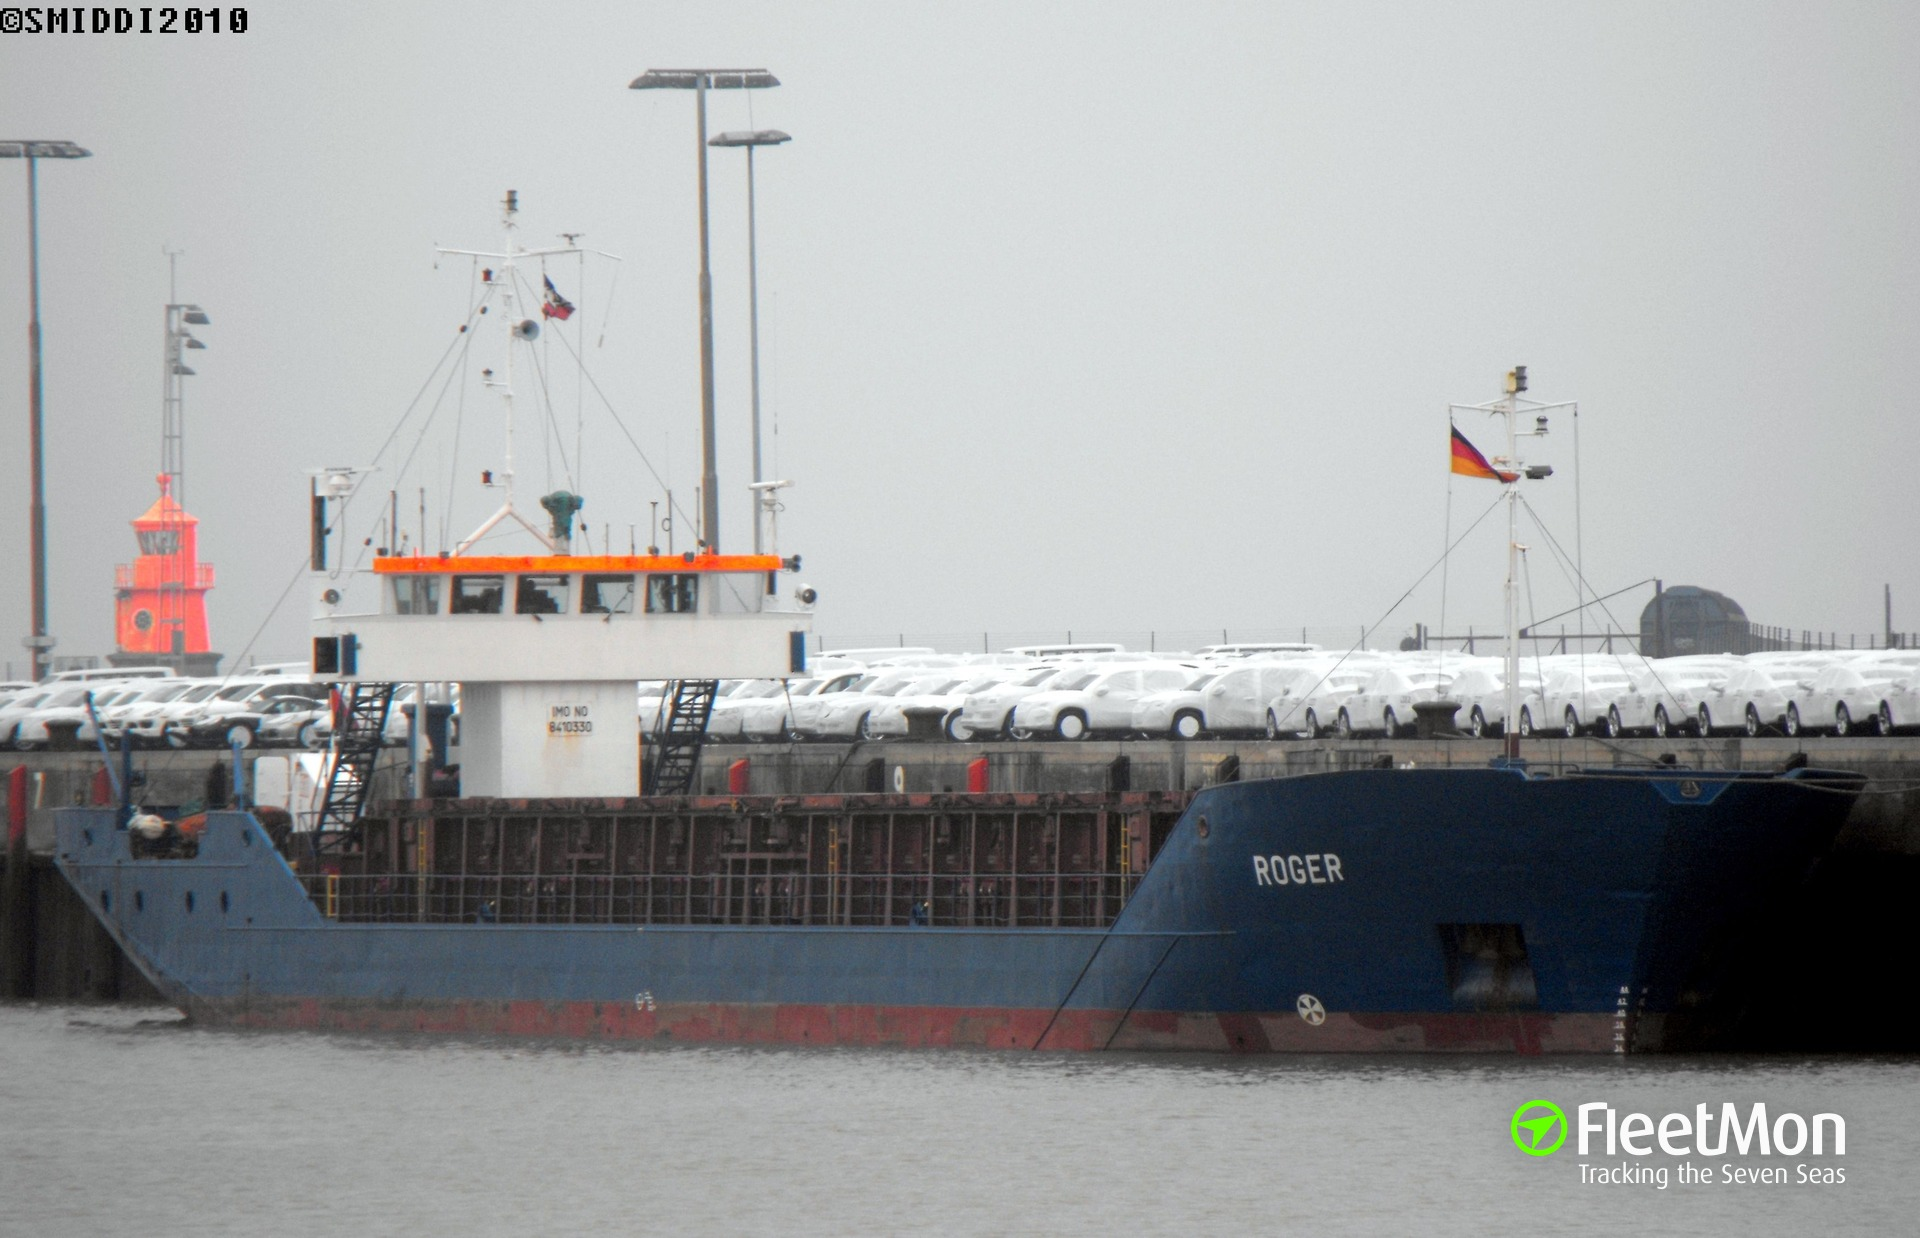 Albanian freighter seized by Libyan military